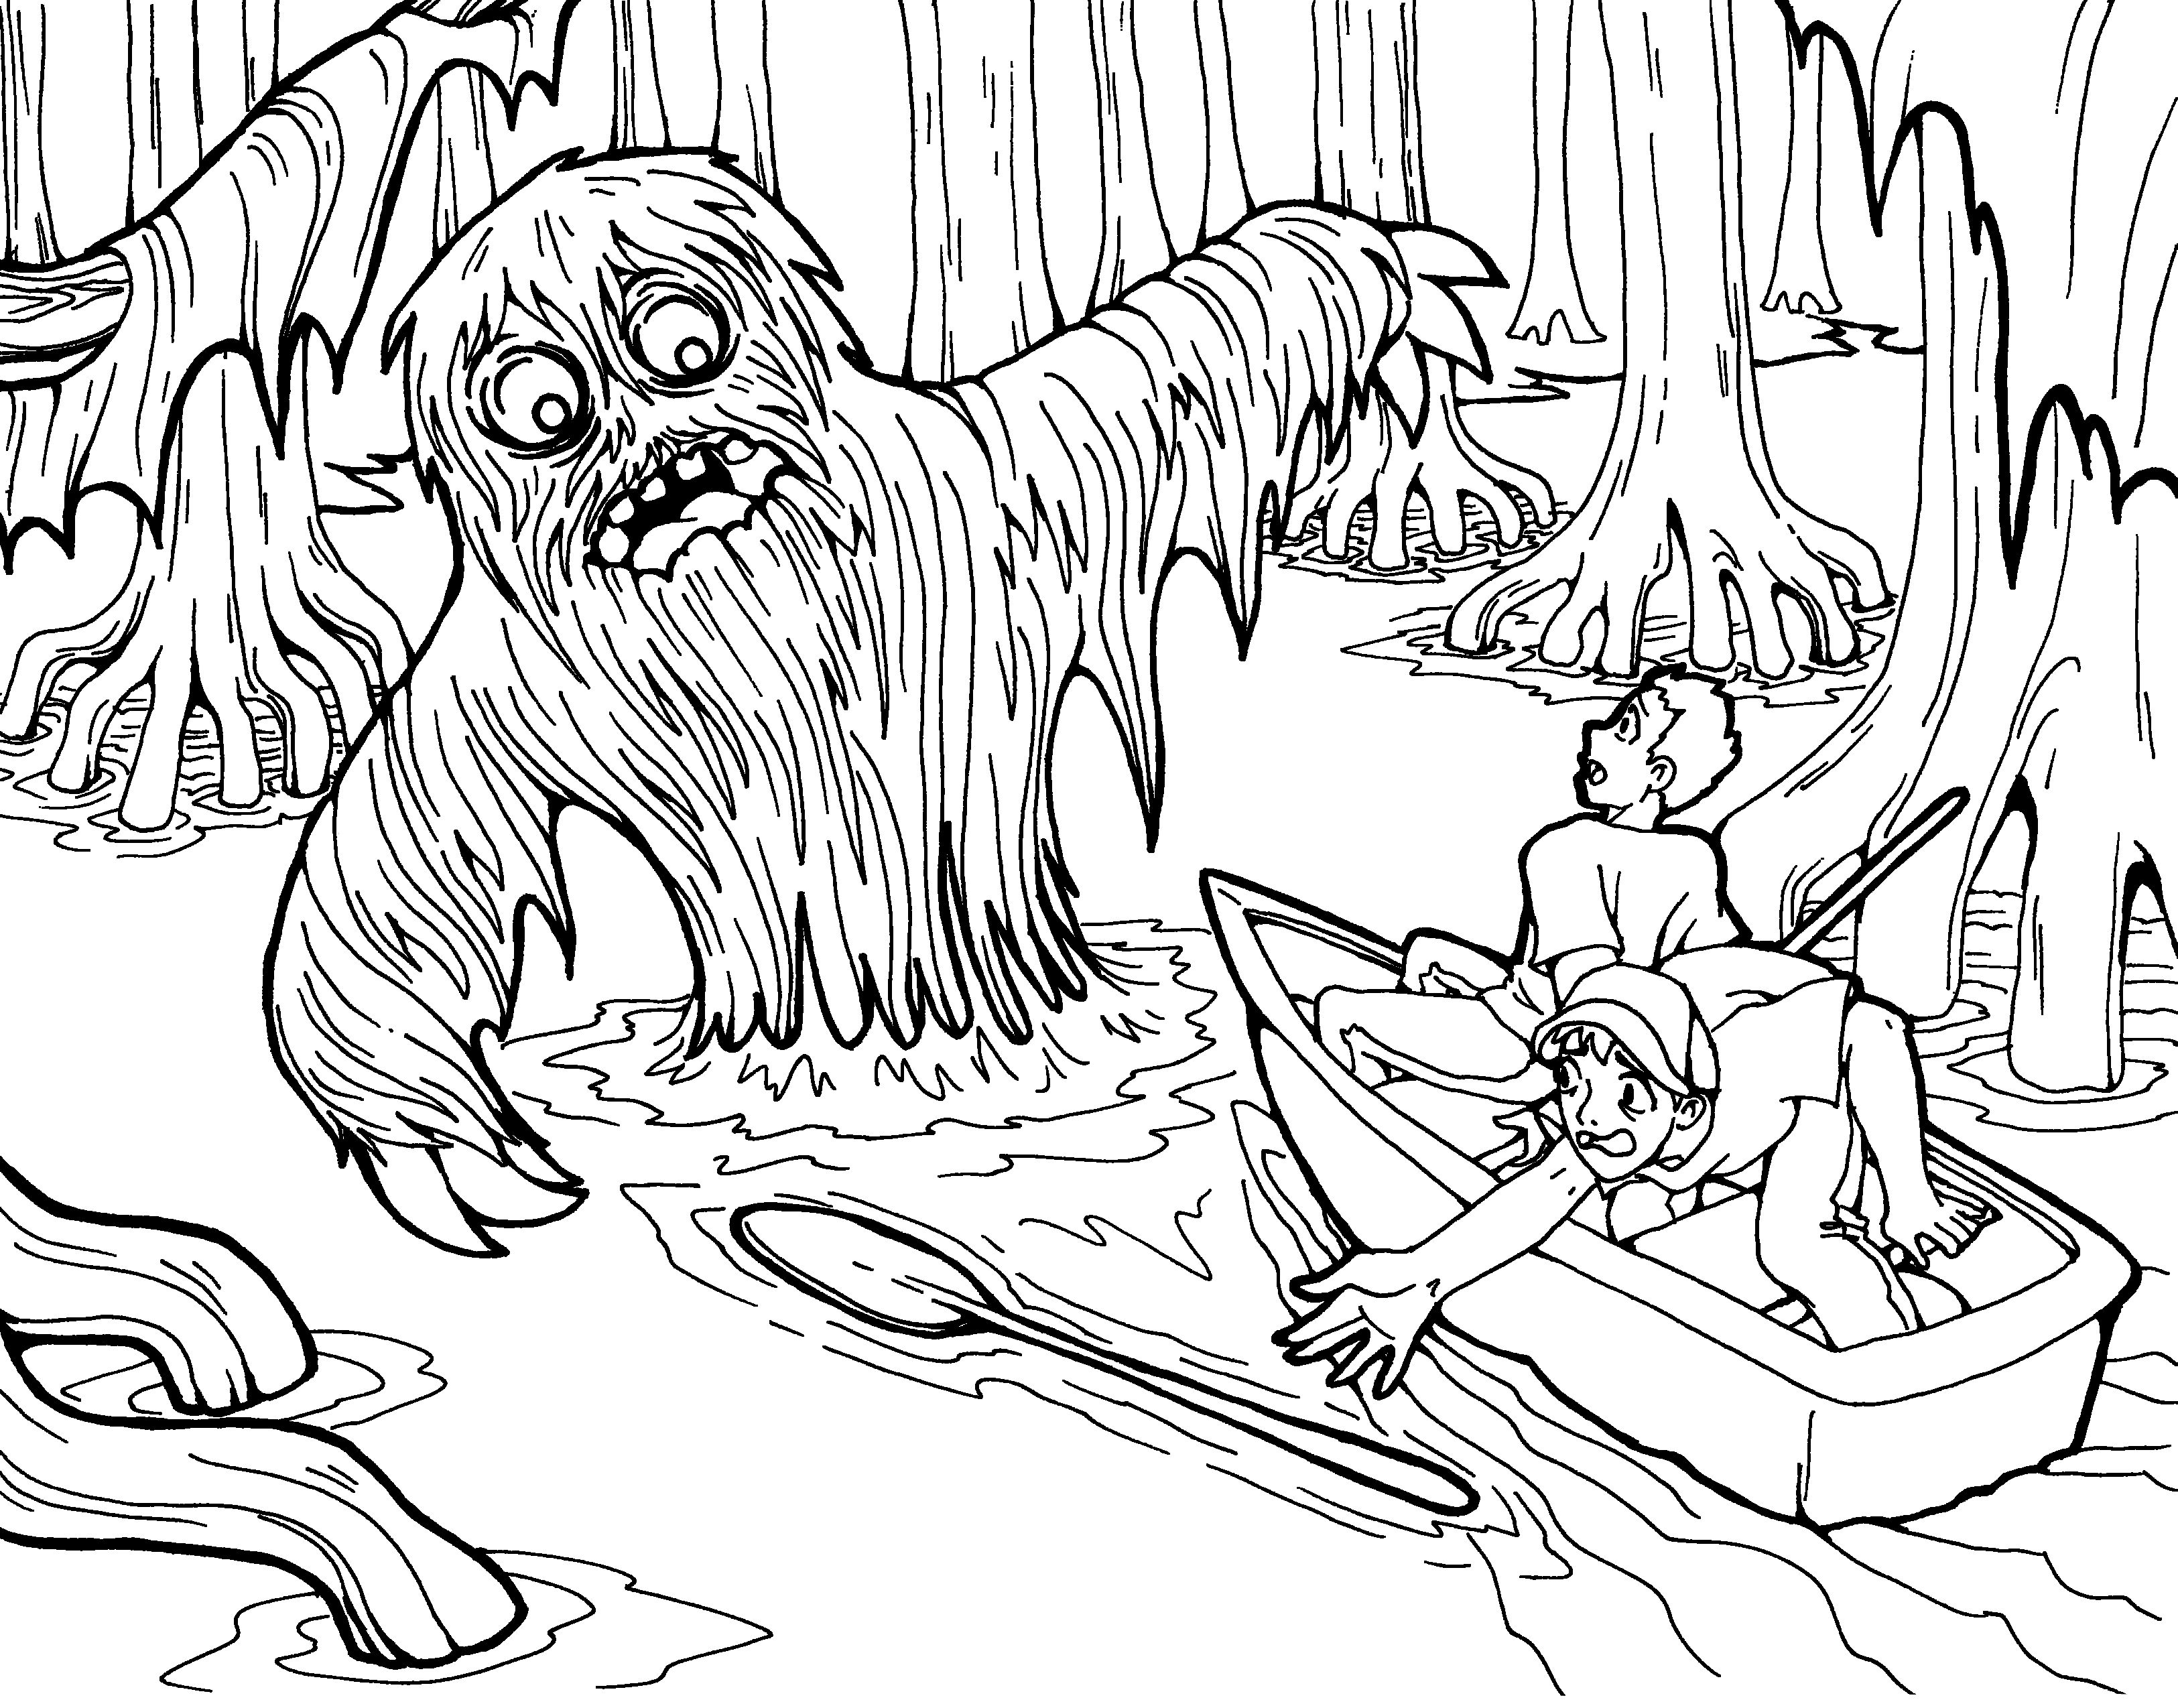 3250x2549 Free Swamp Monster Coloring Page Just For Halloween!! Enjoy!! Find